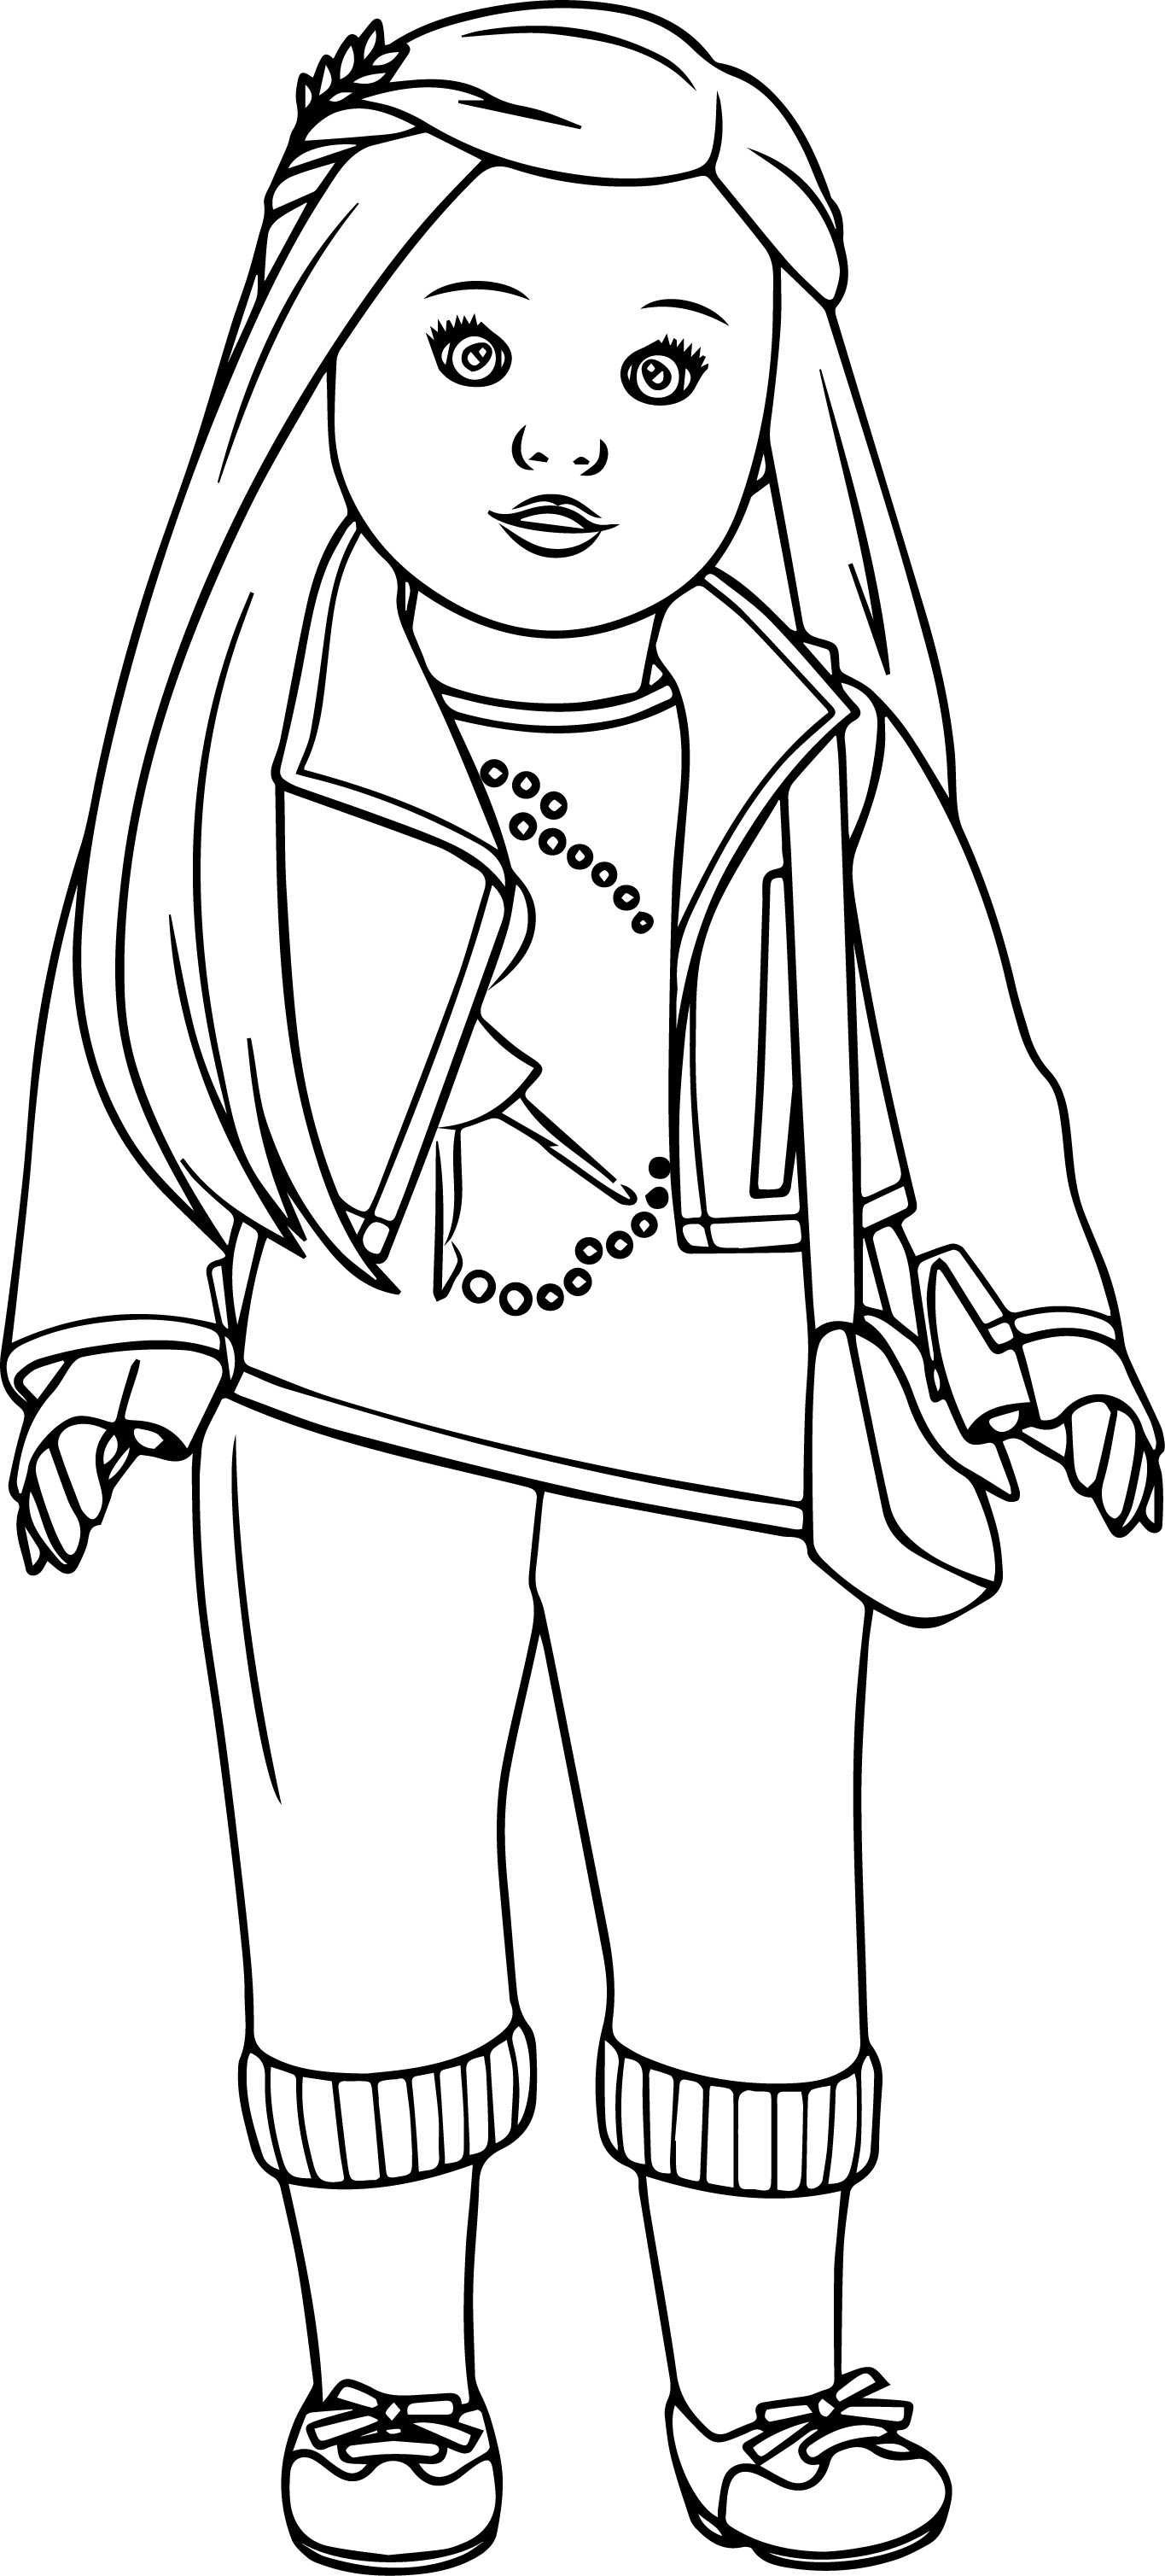 Printable Coloring Pages For Girls Free Printable Coloring Pages Of American Girl Dolls Lovely Unique